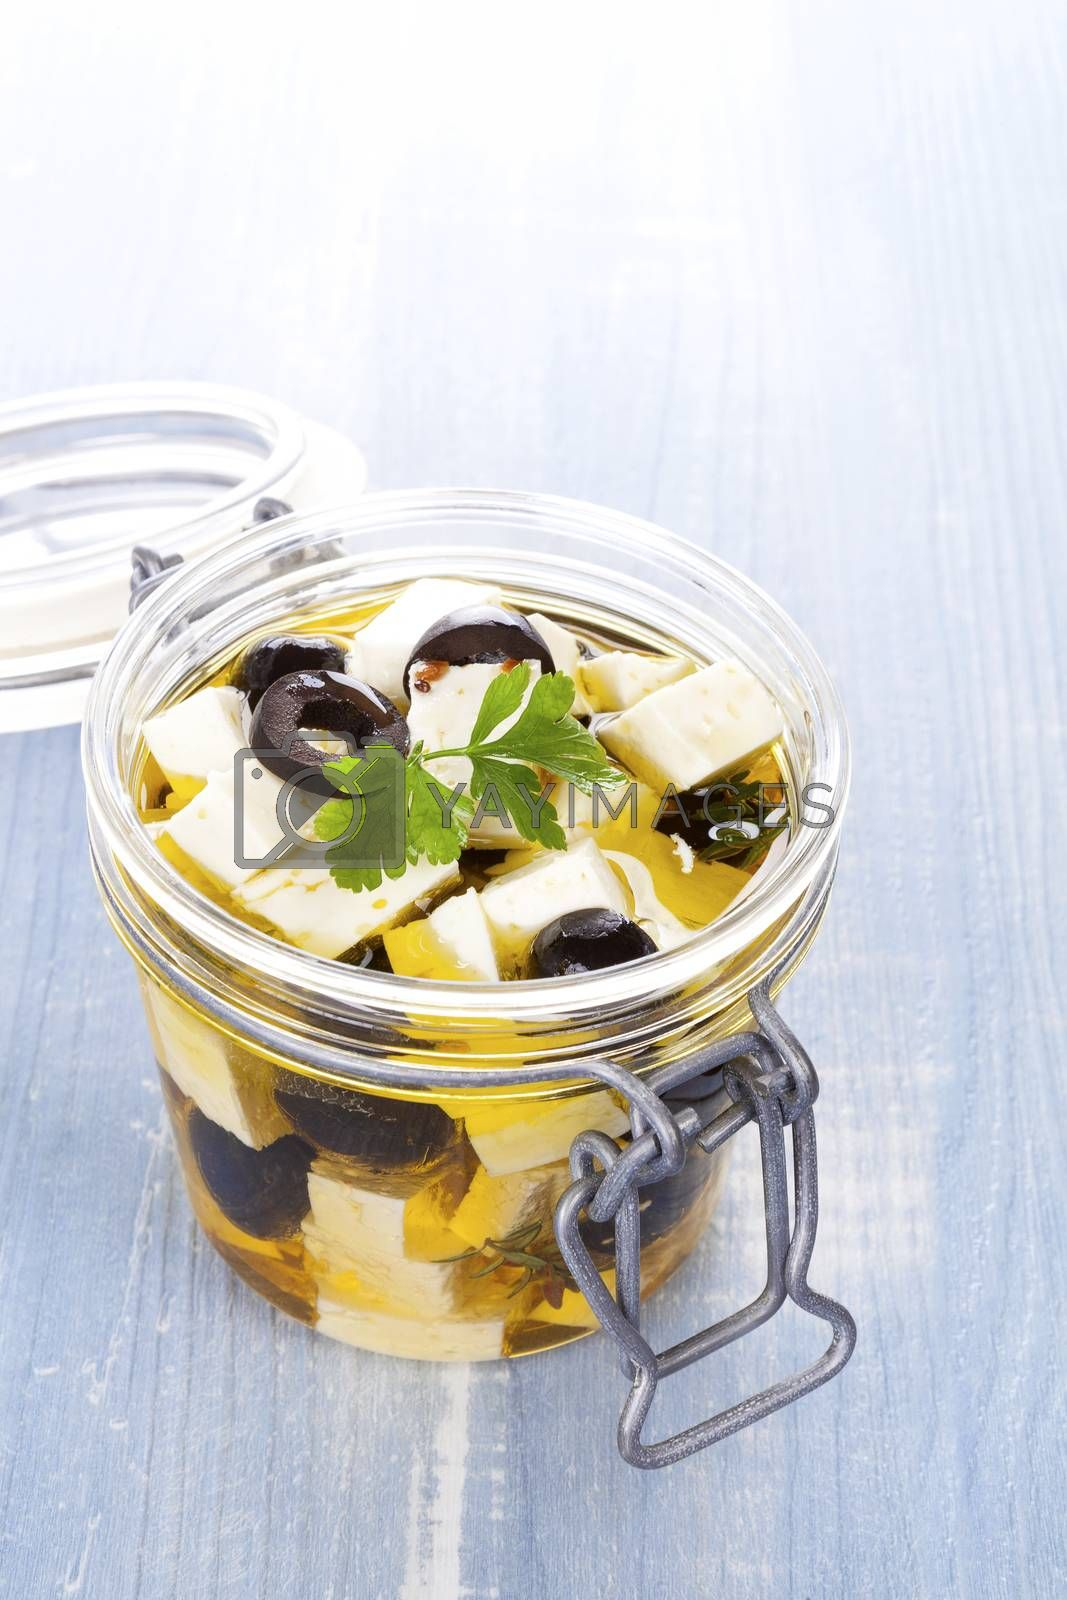 Marinated greek feta cheese in glass jar on blue wooden background. Culinary marinated cheese, rustic styles.